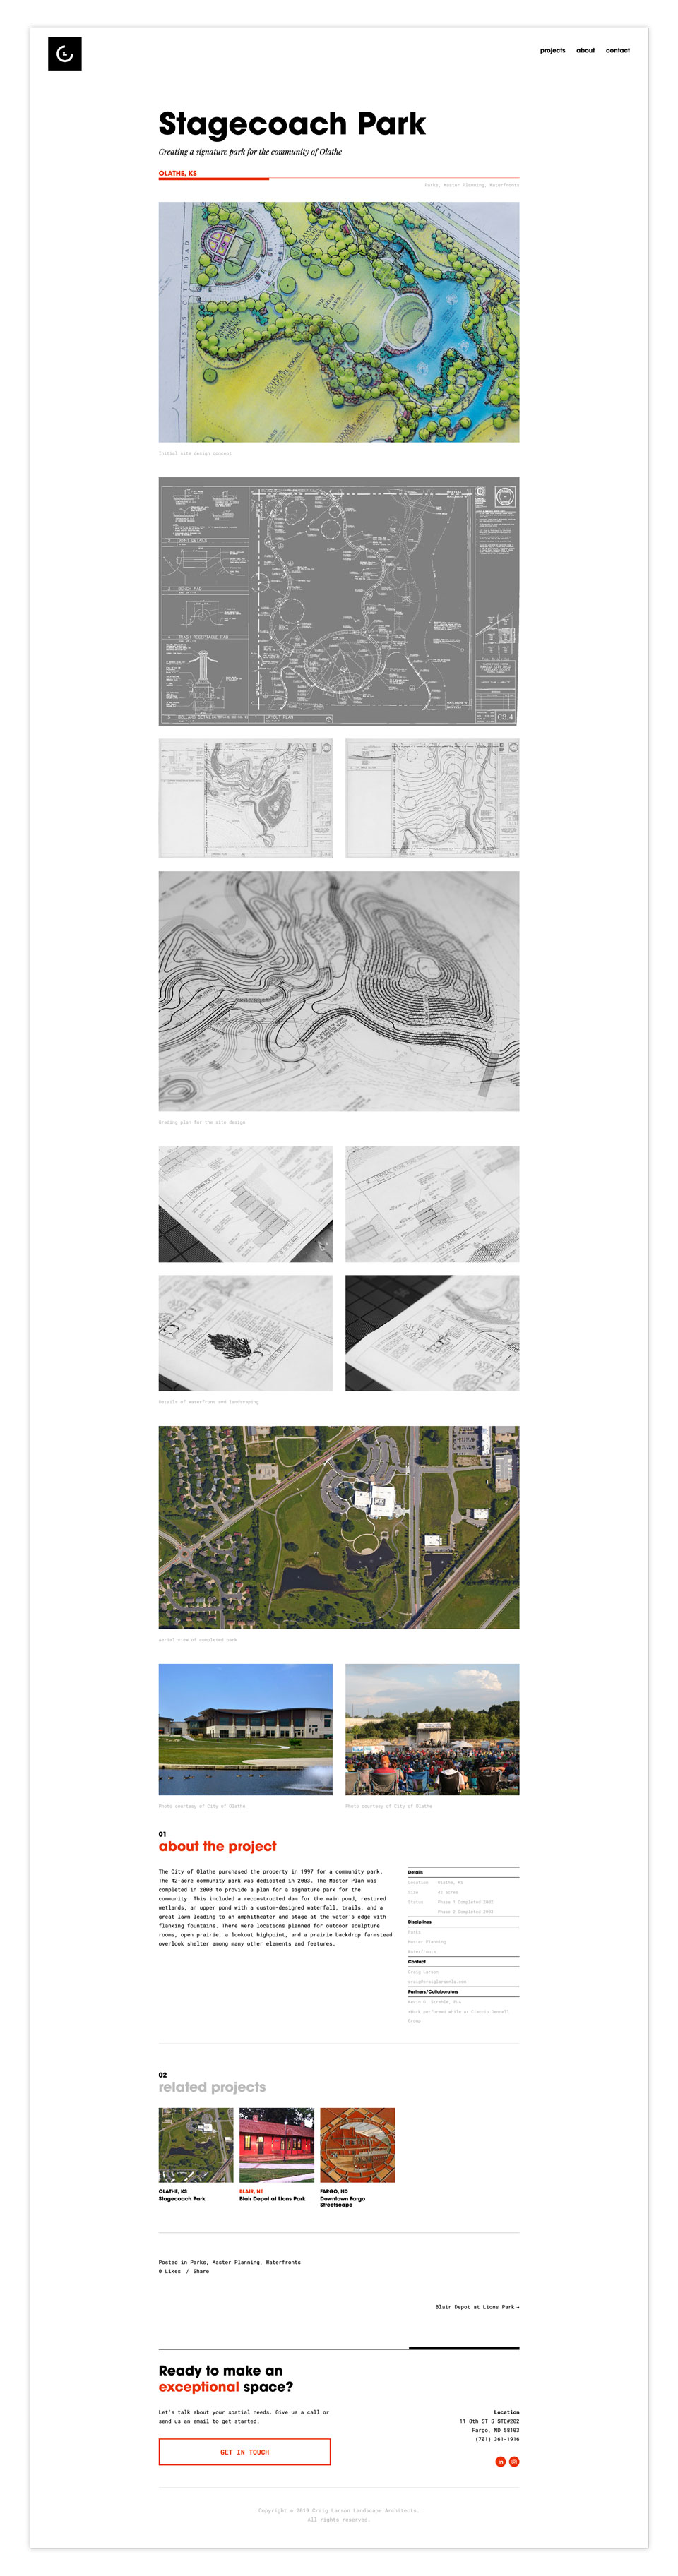 Screenshot of a single project page on CLLA website displaying details about the design of the Stagecoach Park